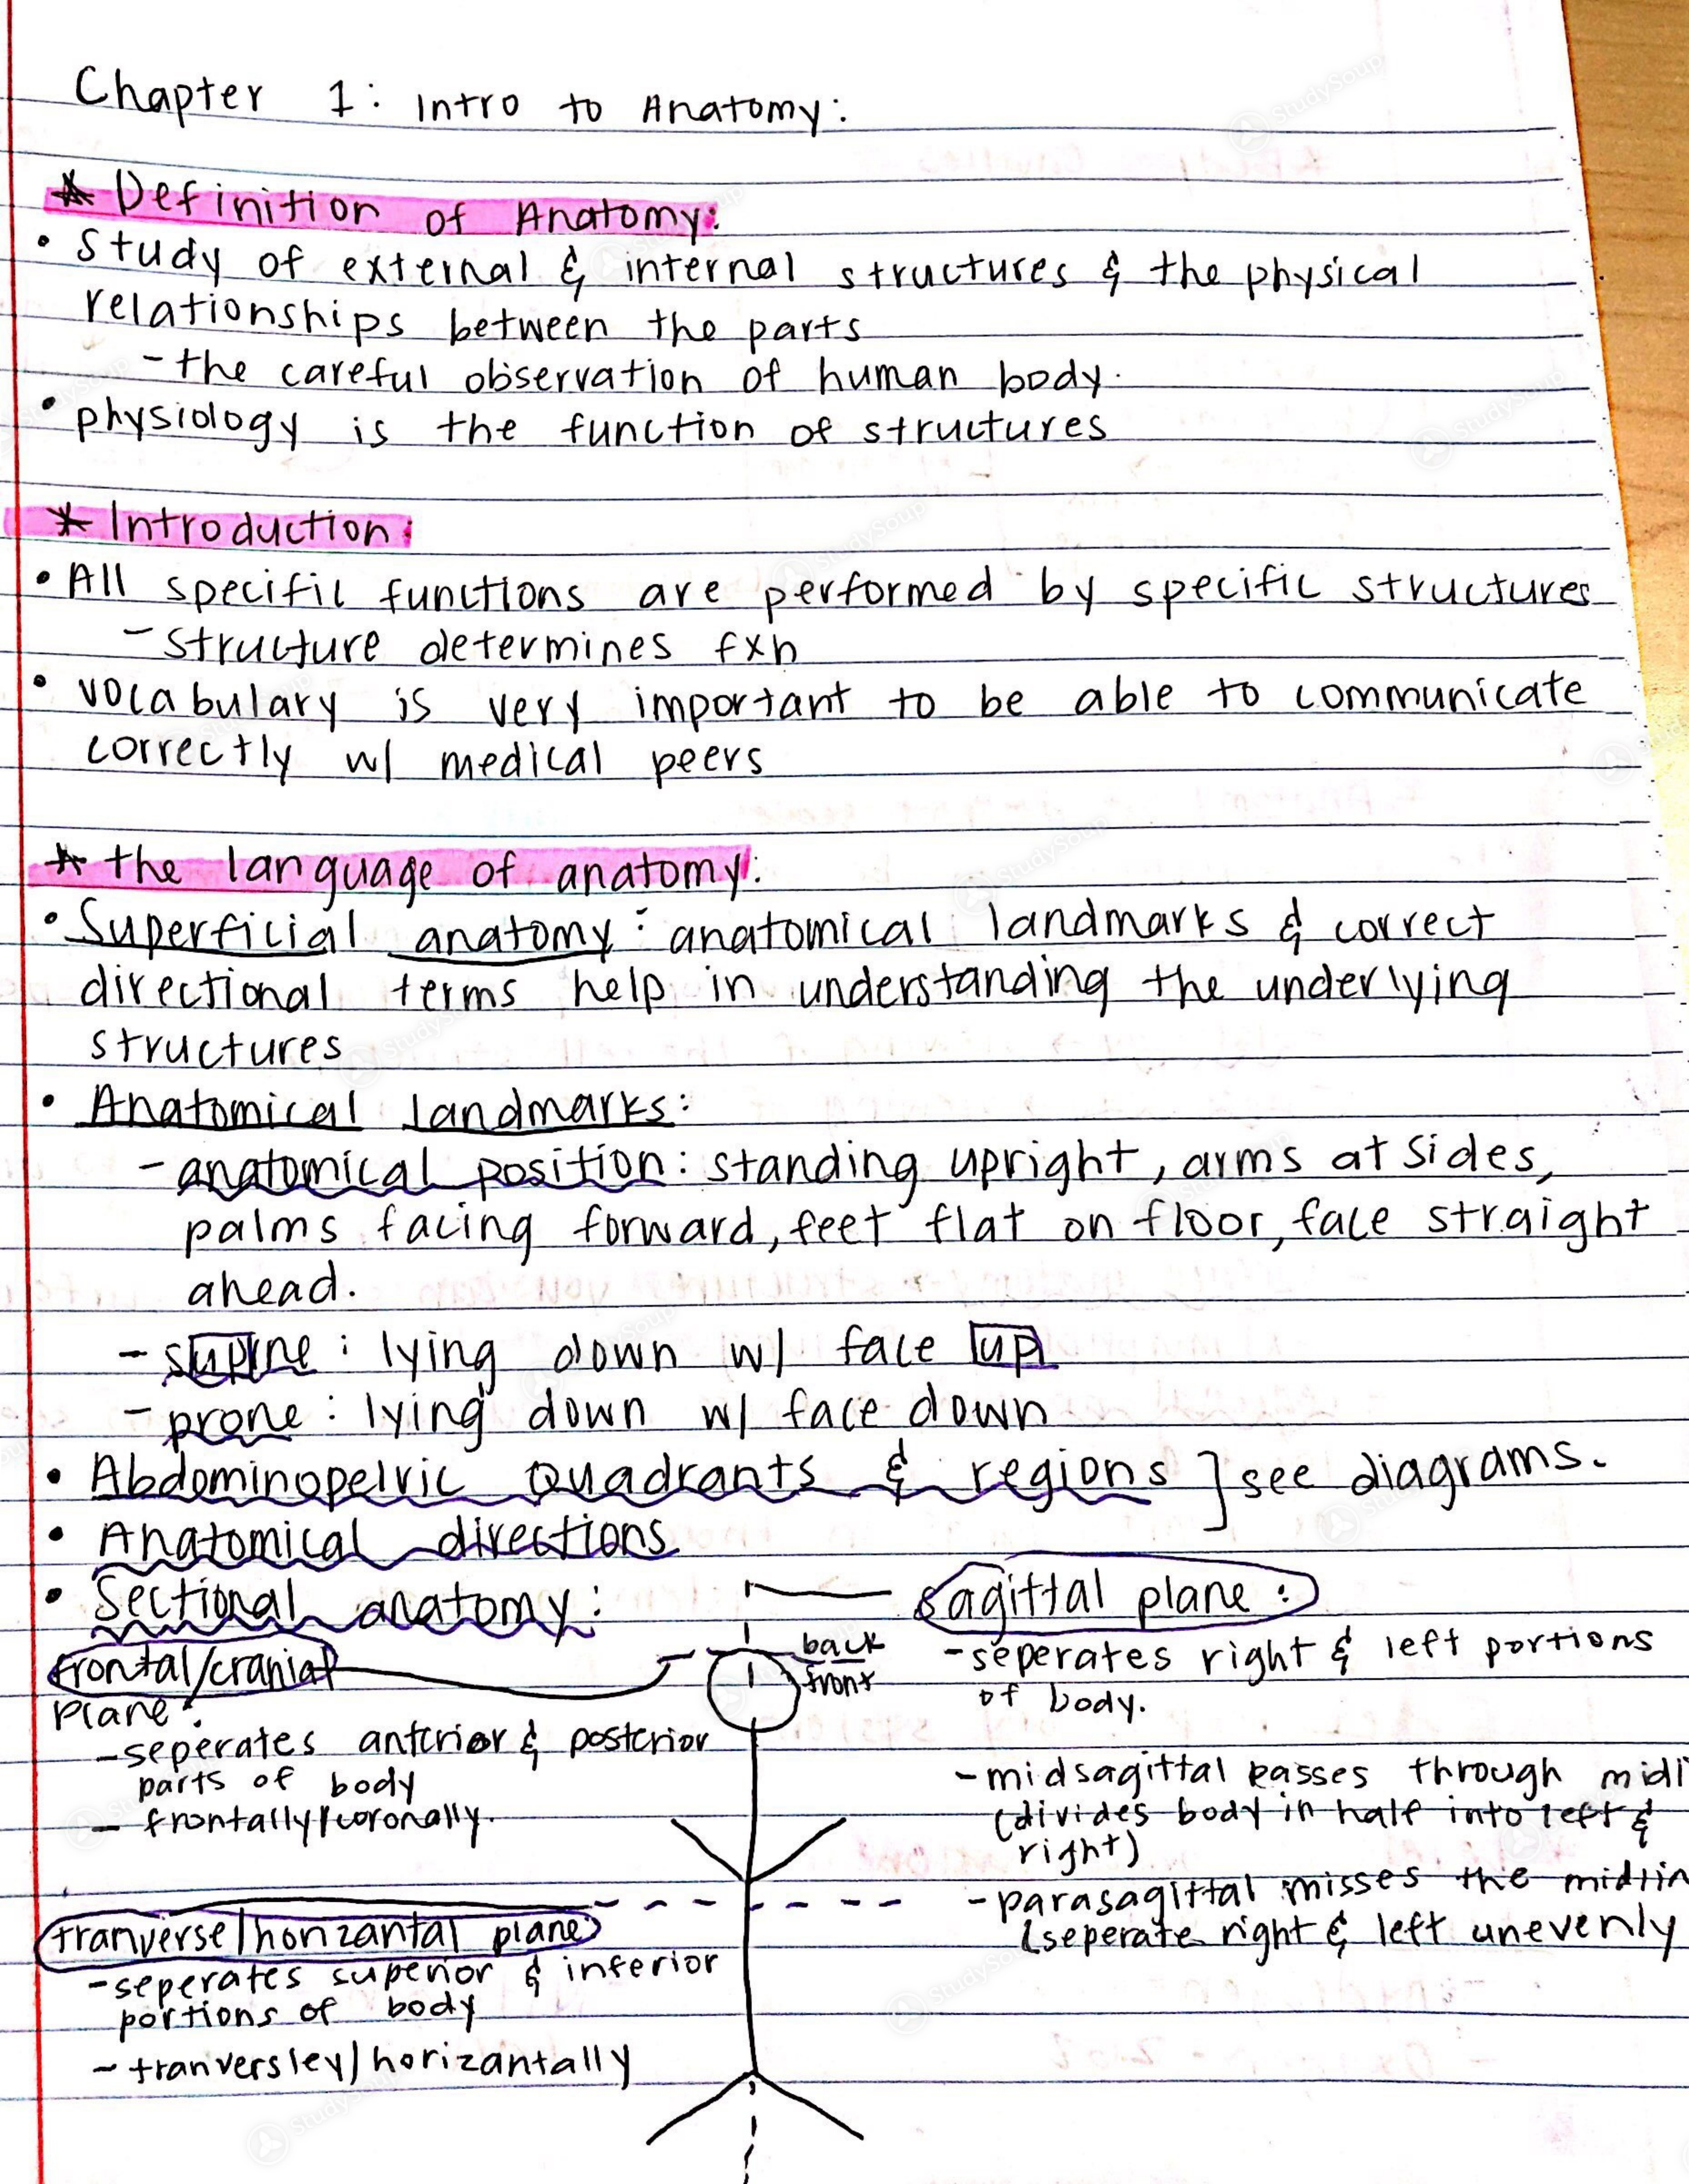 Fiu Zoo 3731 Human Anatomy Ch1 Notes Class Notes Studysoup